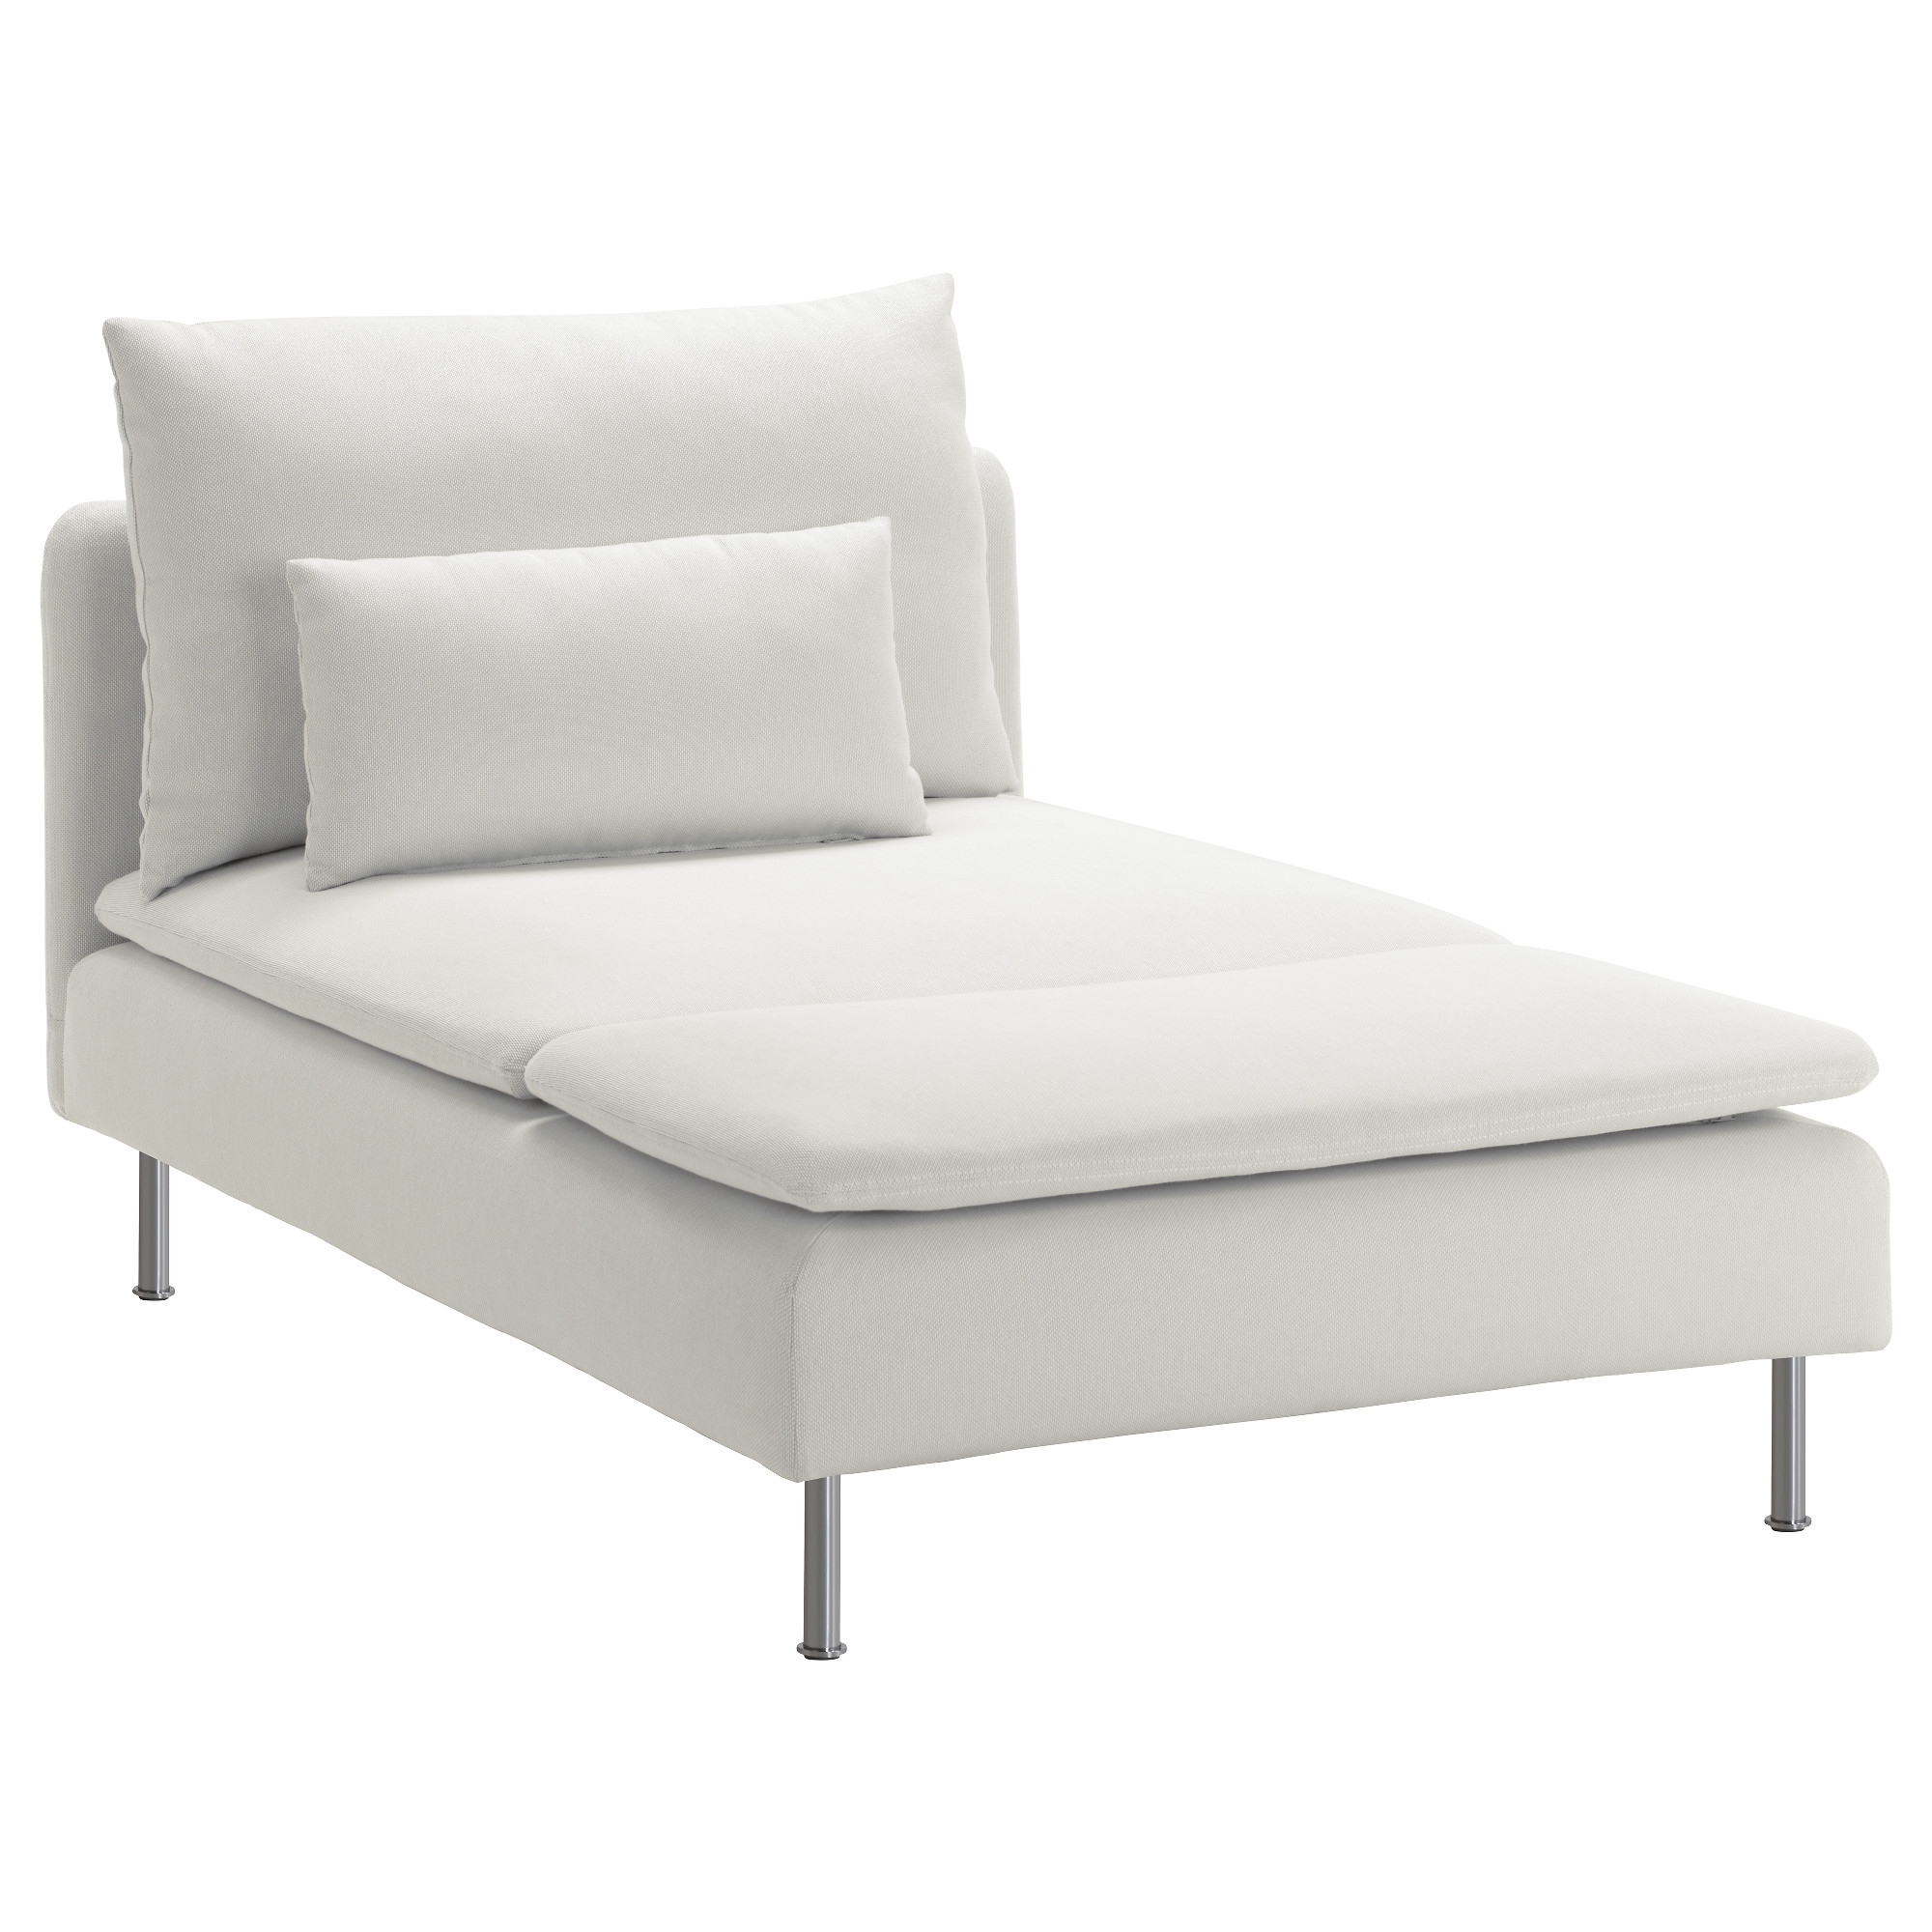 Recent Söderhamn Chaise – Samsta Light Pink – Ikea With Regard To Outdoor Ikea Chaise Lounge Chairs (View 13 of 15)